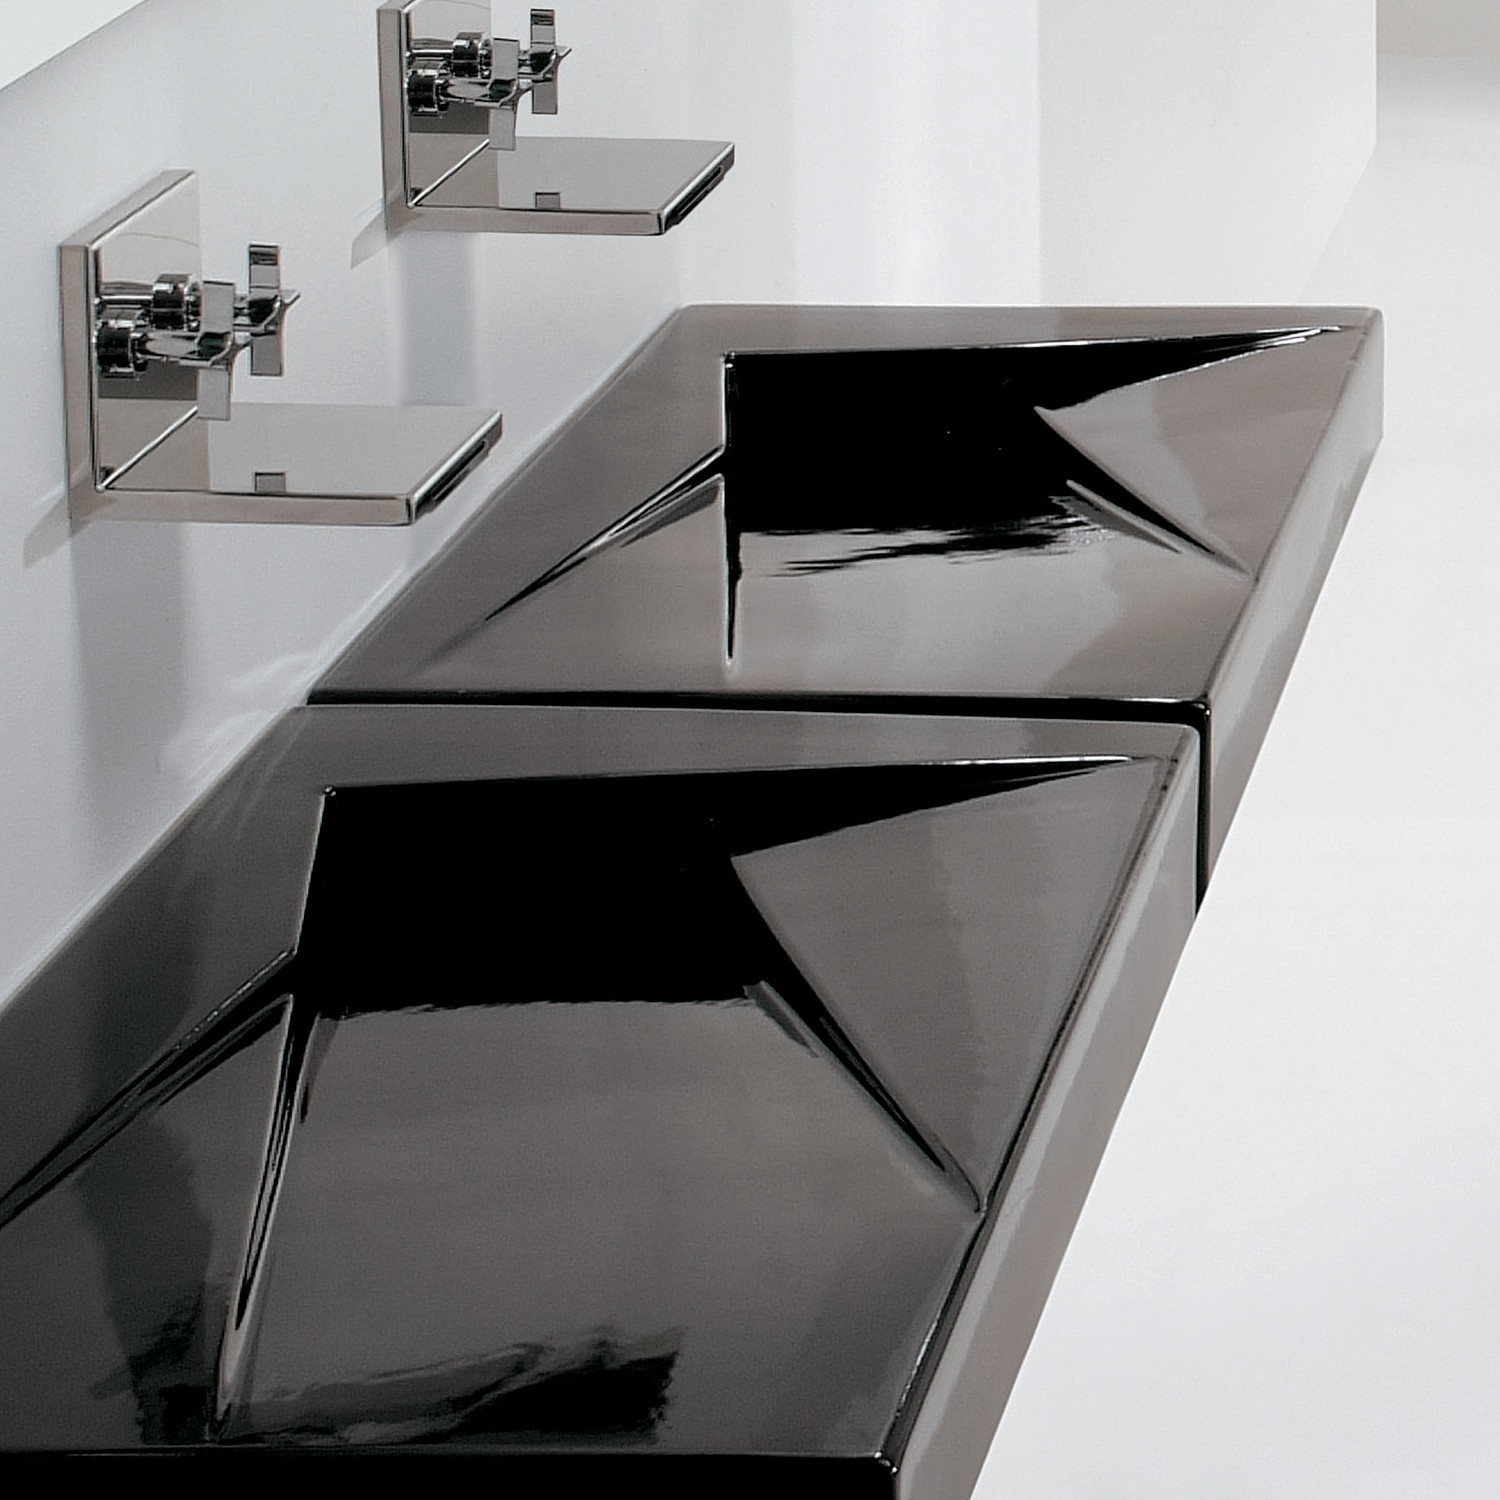 Ideas, bathroom waterfall bathtub faucet waterfall faucet faucets with dimensions 1500 x 1500  .